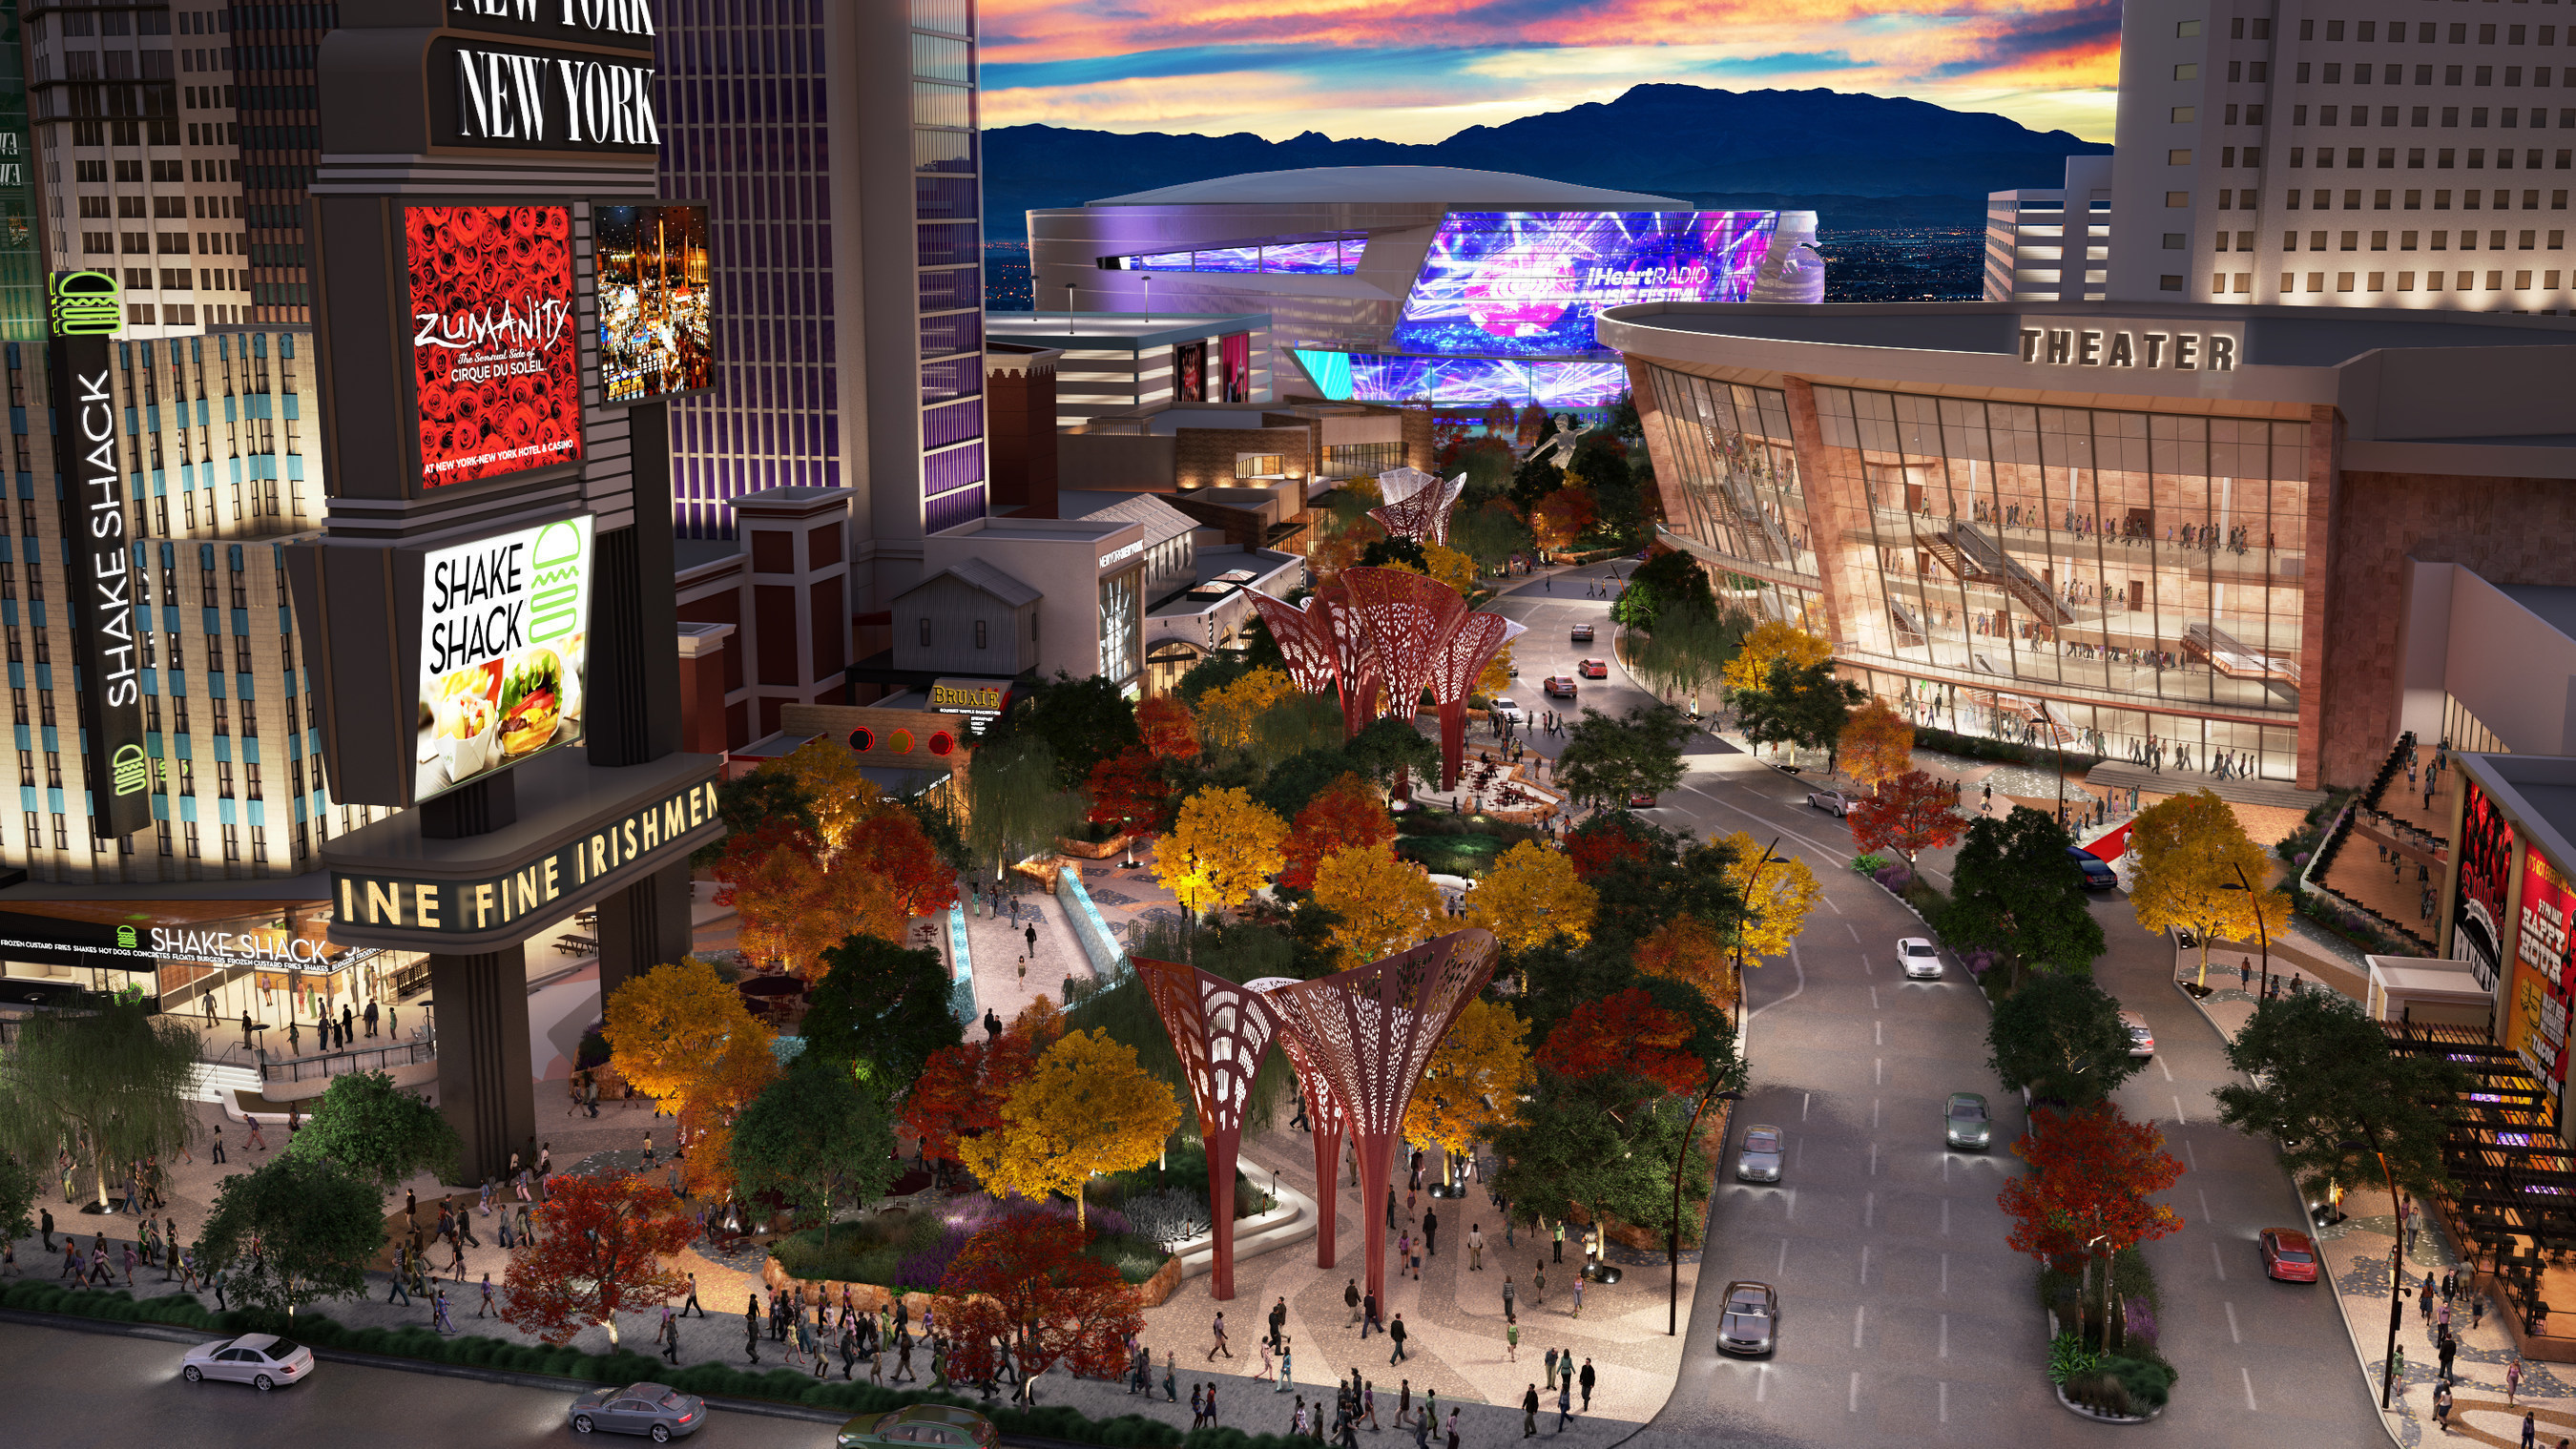 The Monte Carlo theater will be adjacent to The Park and 20,000-seat arena currently under construction on Las Vegas Blvd., anchoring the dynamic new entertainment district currently taking shape.